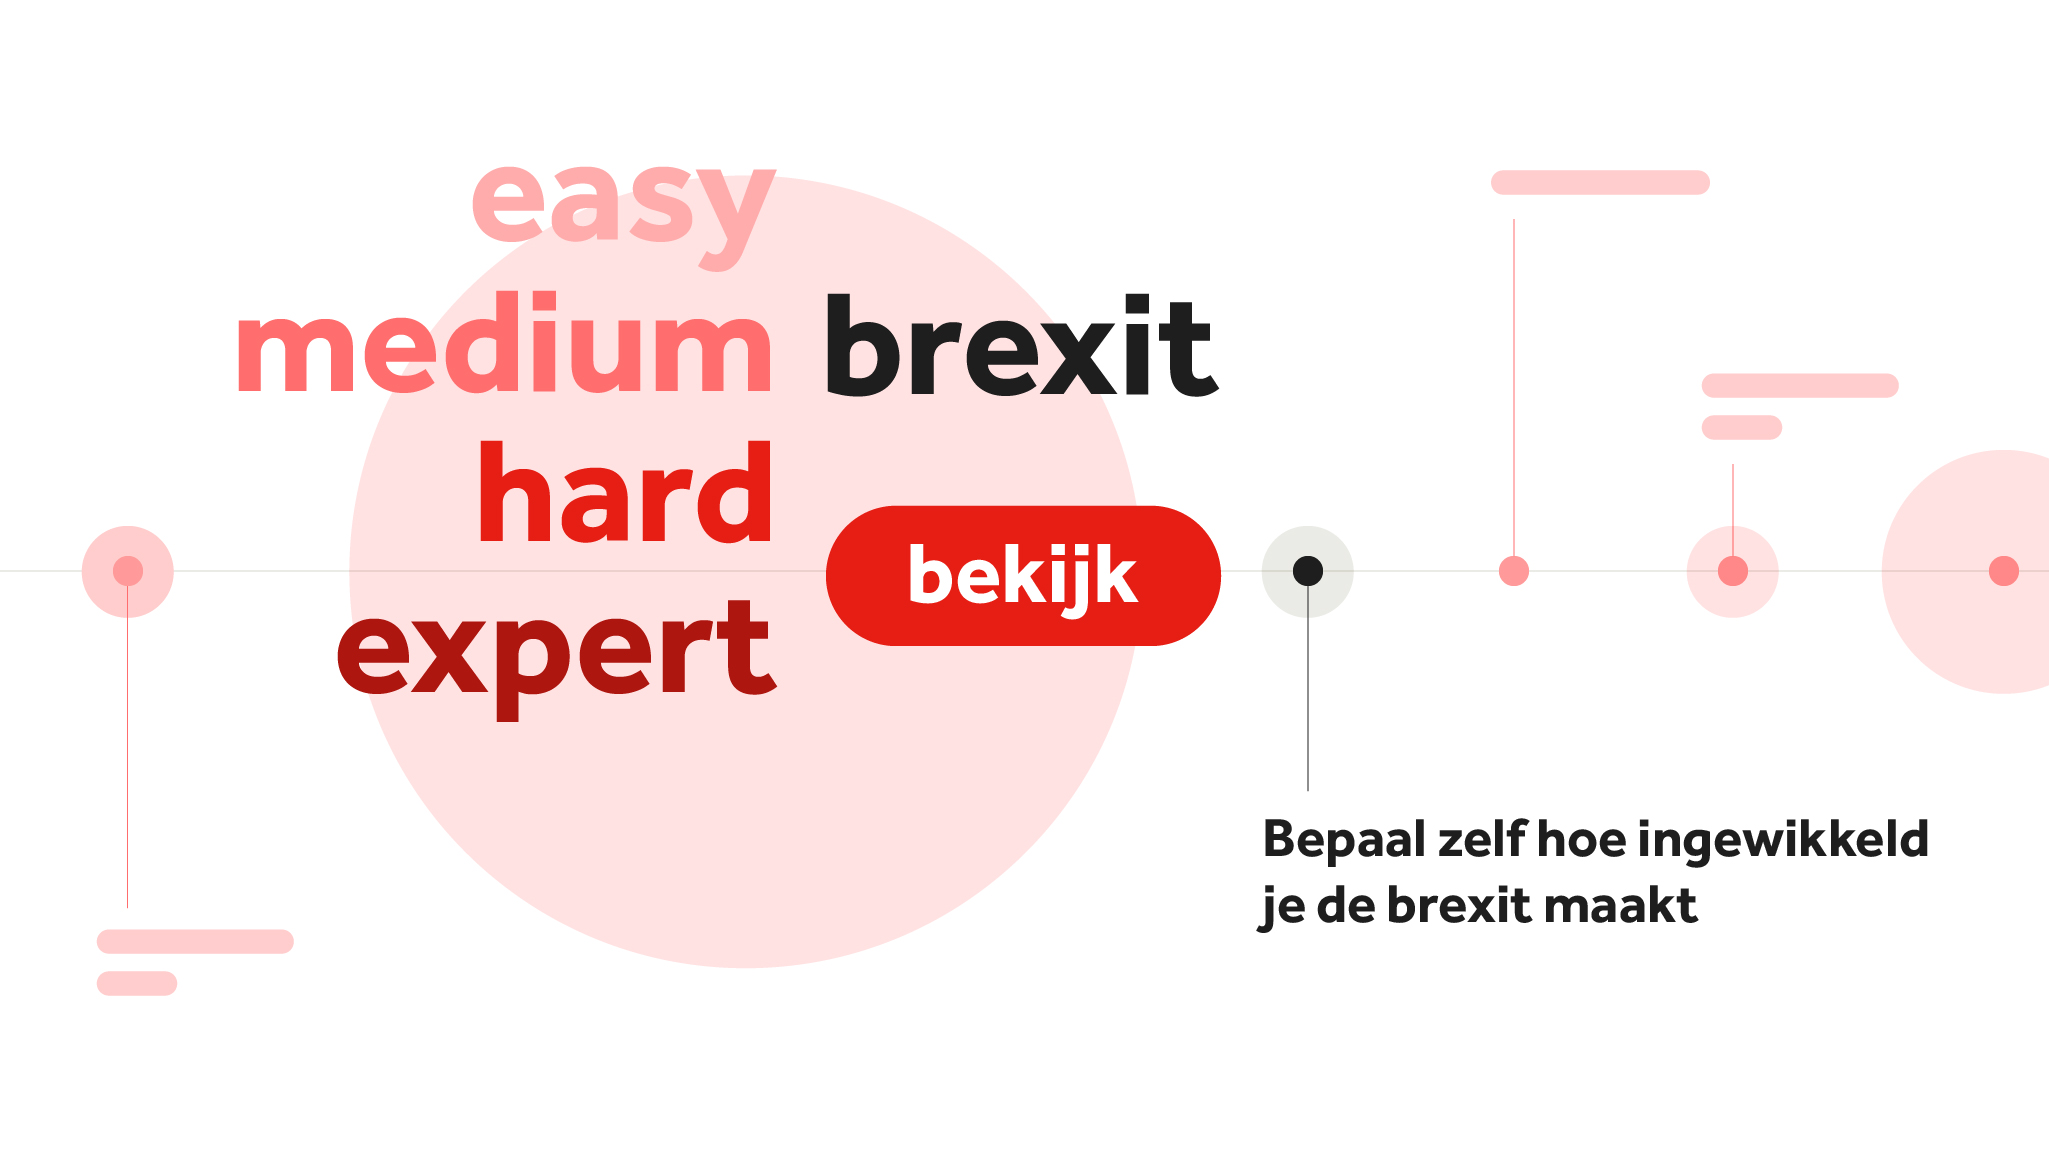 De Brexit uitgelegd: easy/medium/hard/expert